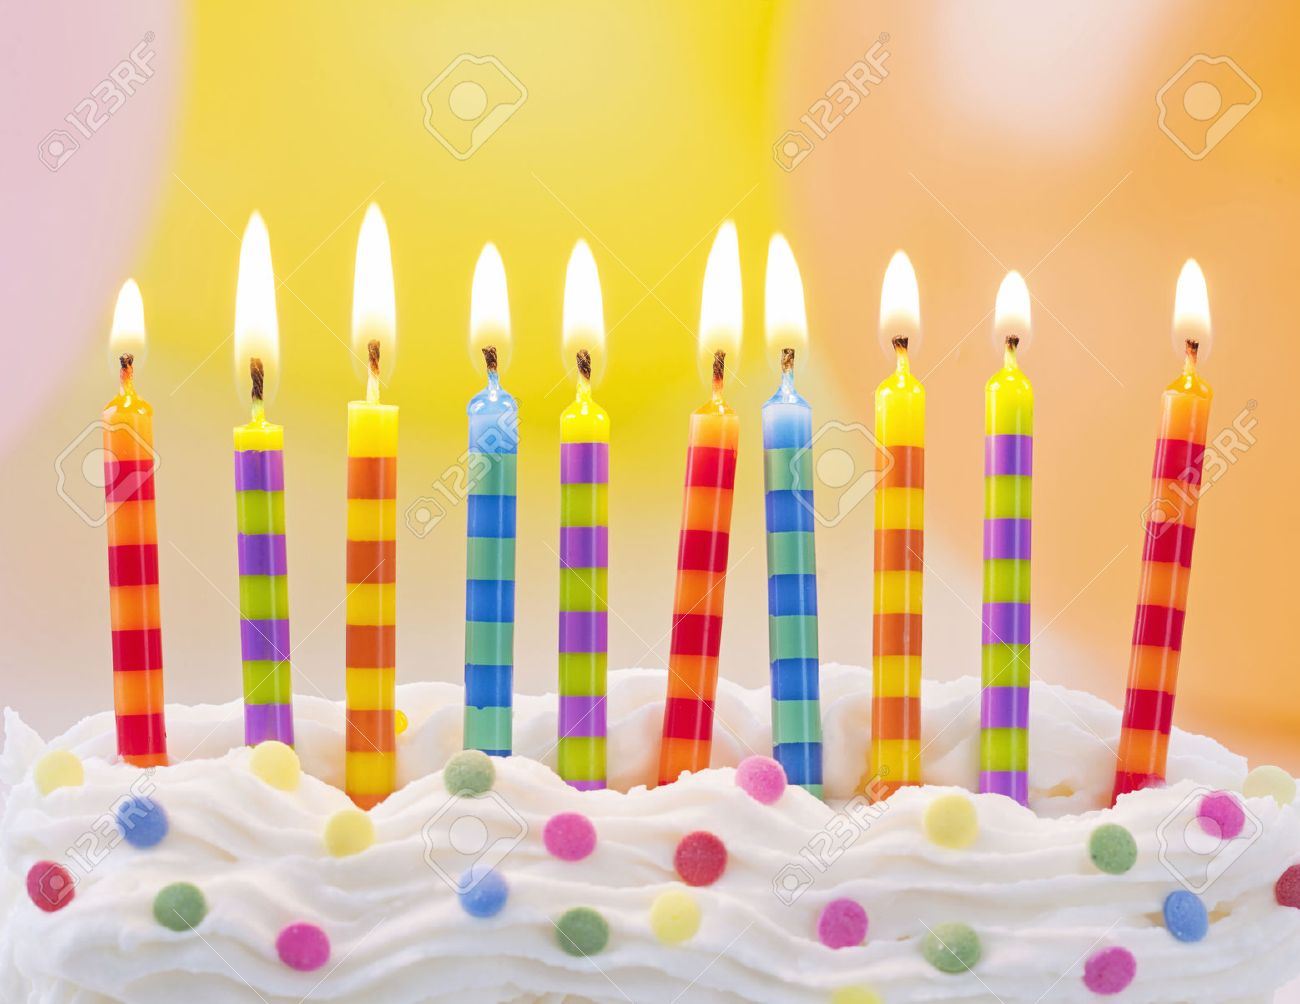 Birthday Candles On Colorful Background Stock Photo Picture And Royalty Free Image Image 27911972